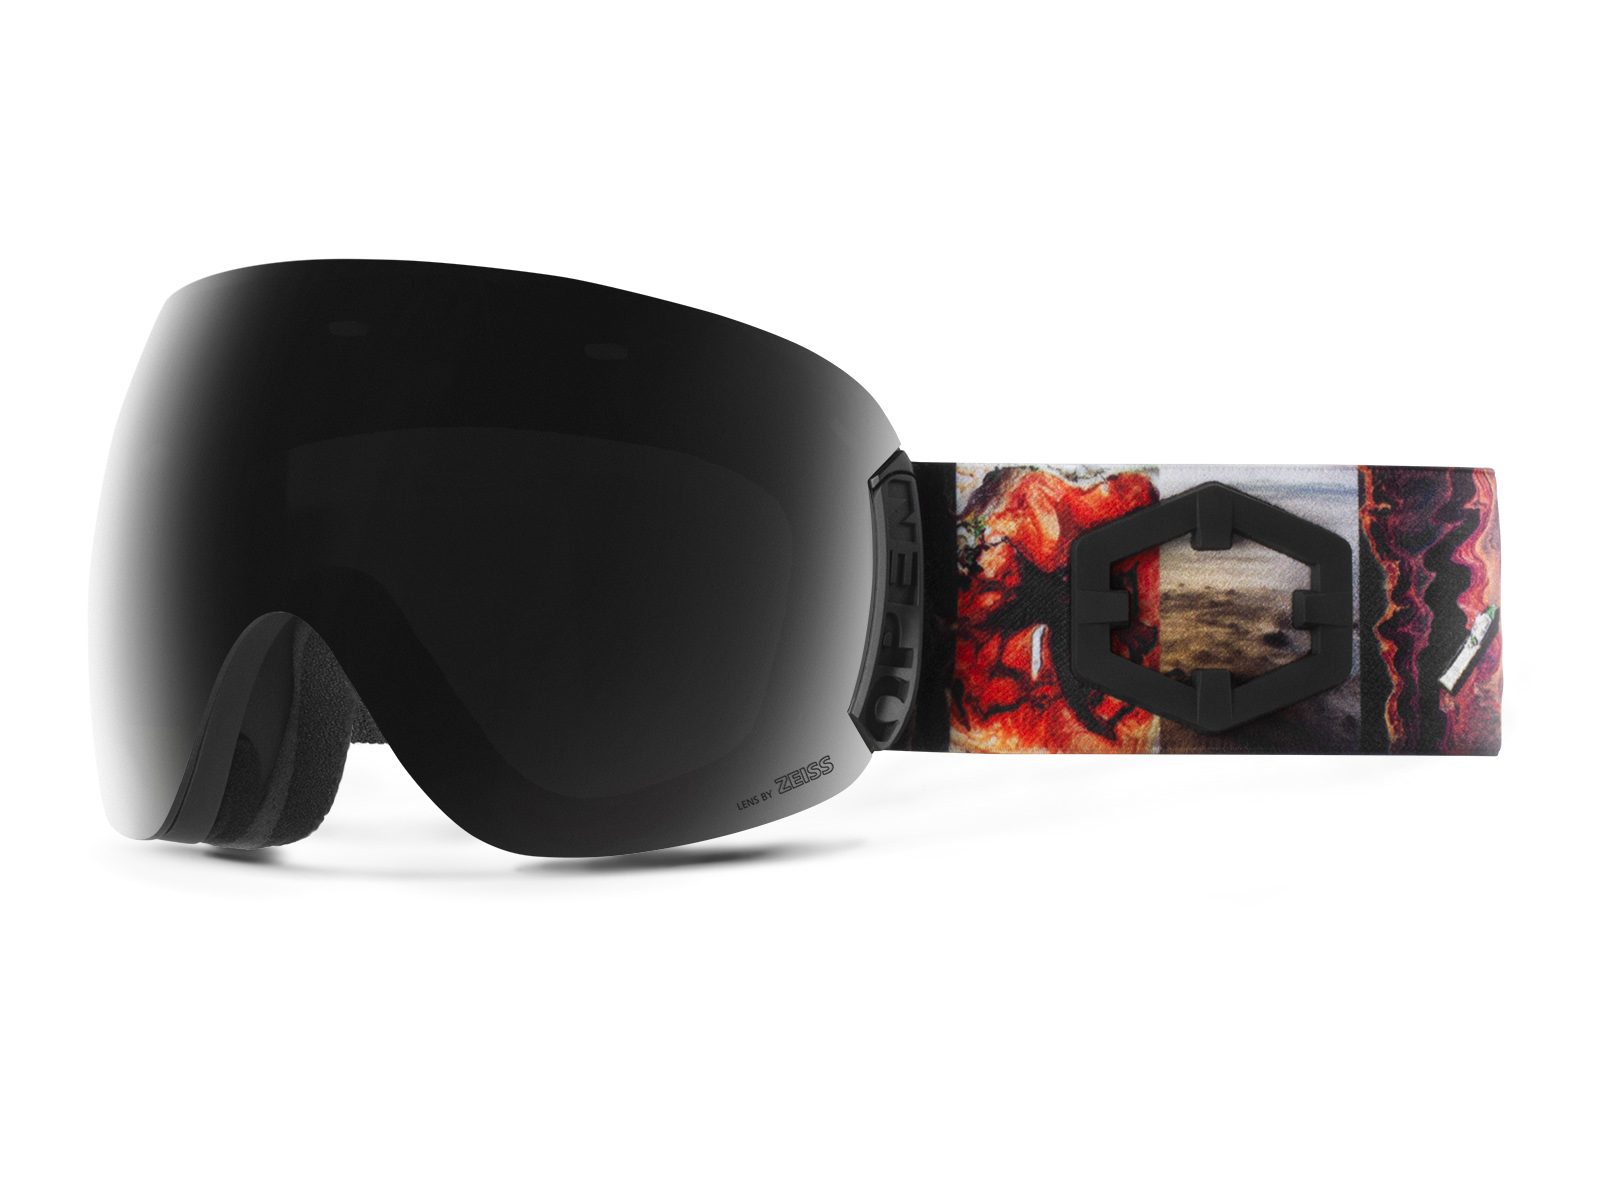 OPEN PROGRESS SMOKE GOGGLE